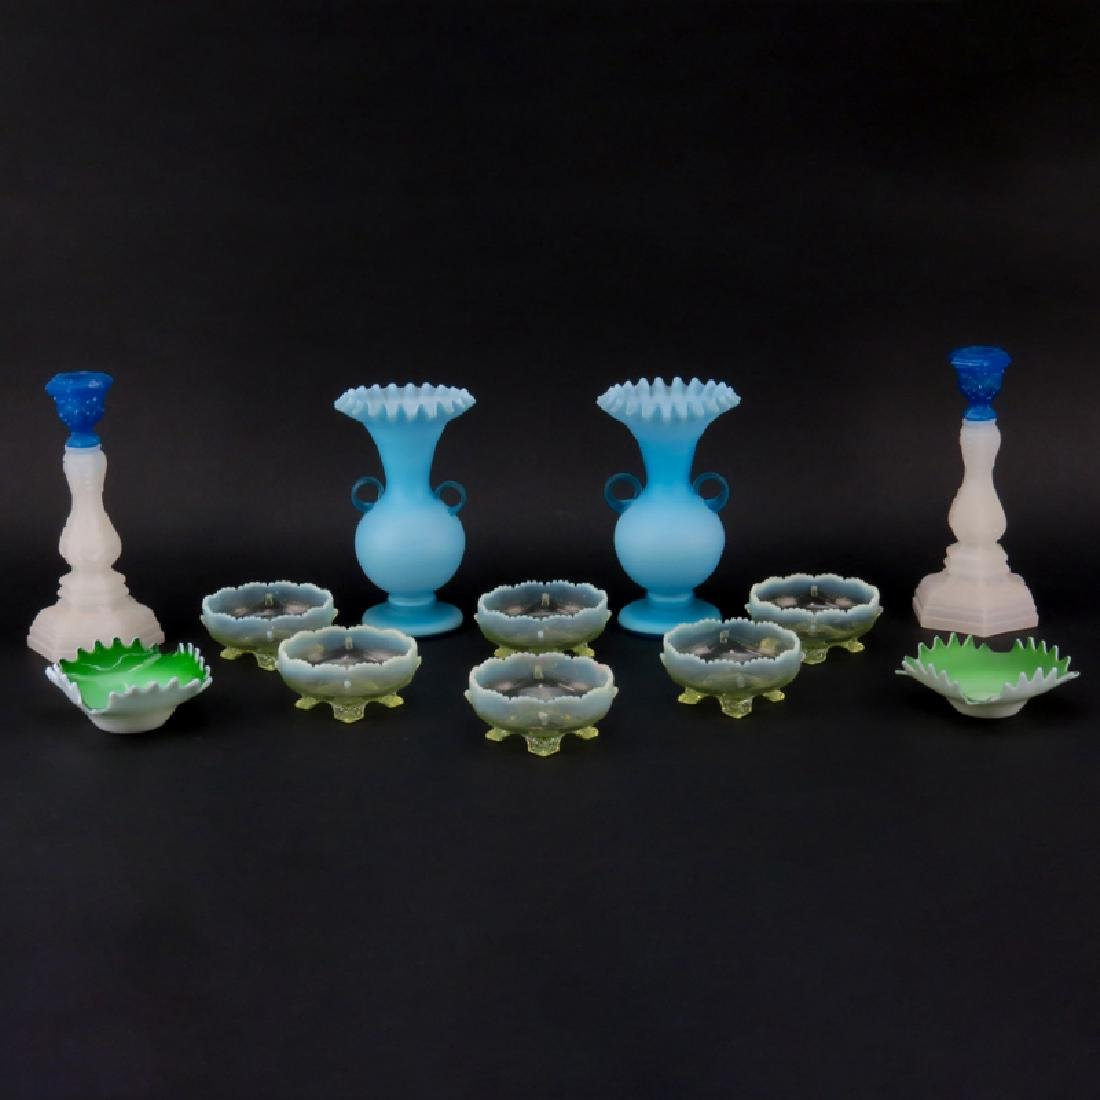 Assortment (12+ pieces) of Vintage American Glass